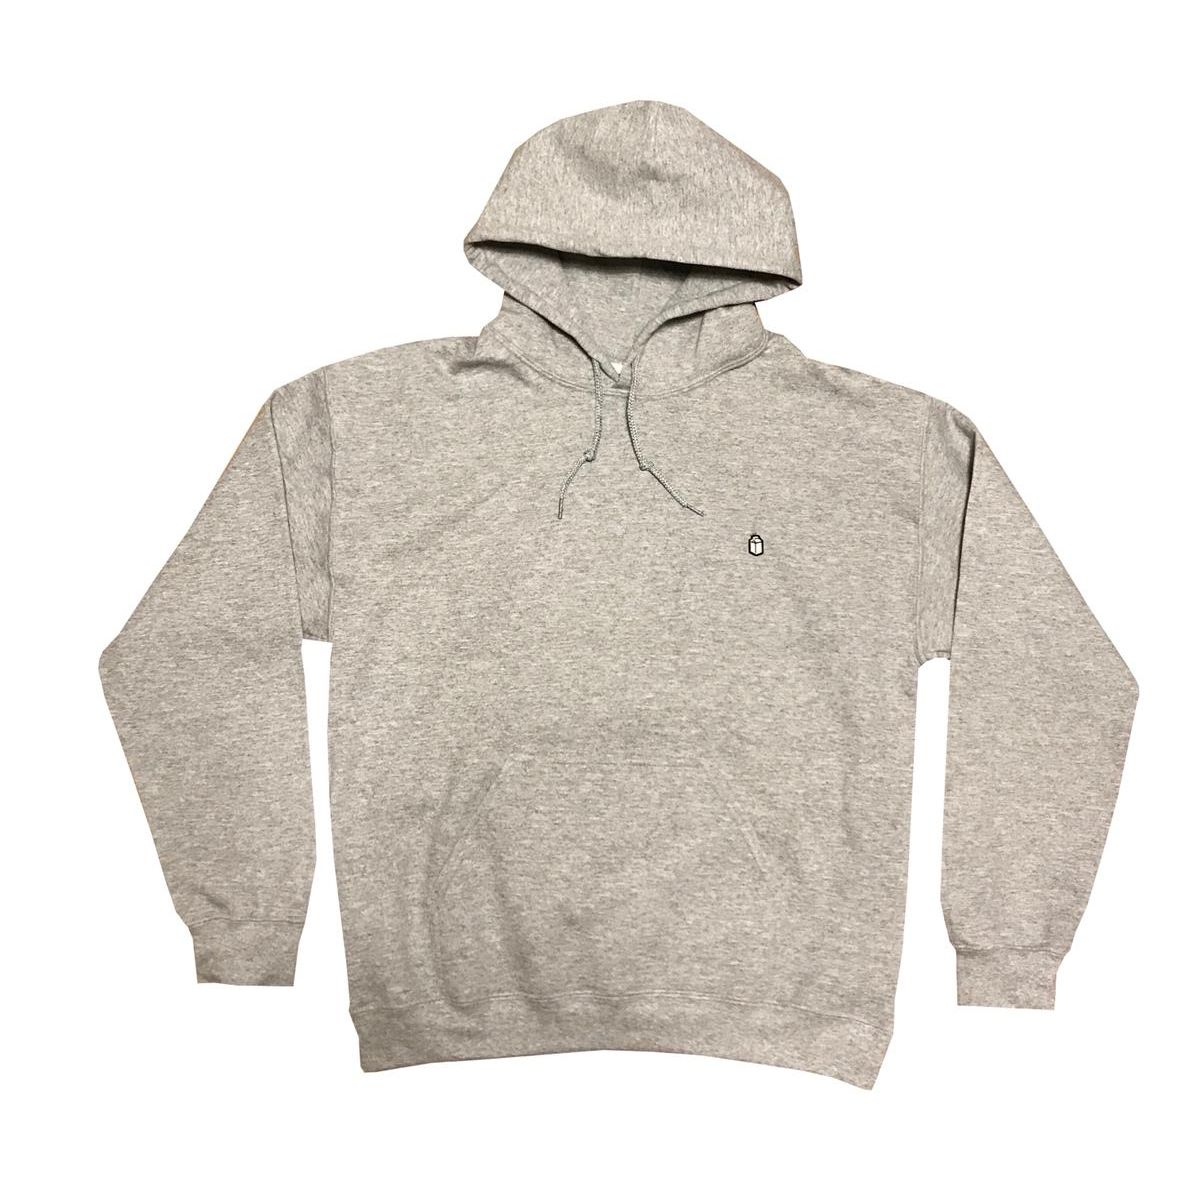 SoYou Clothing Basics Hoodie in Heather Grey